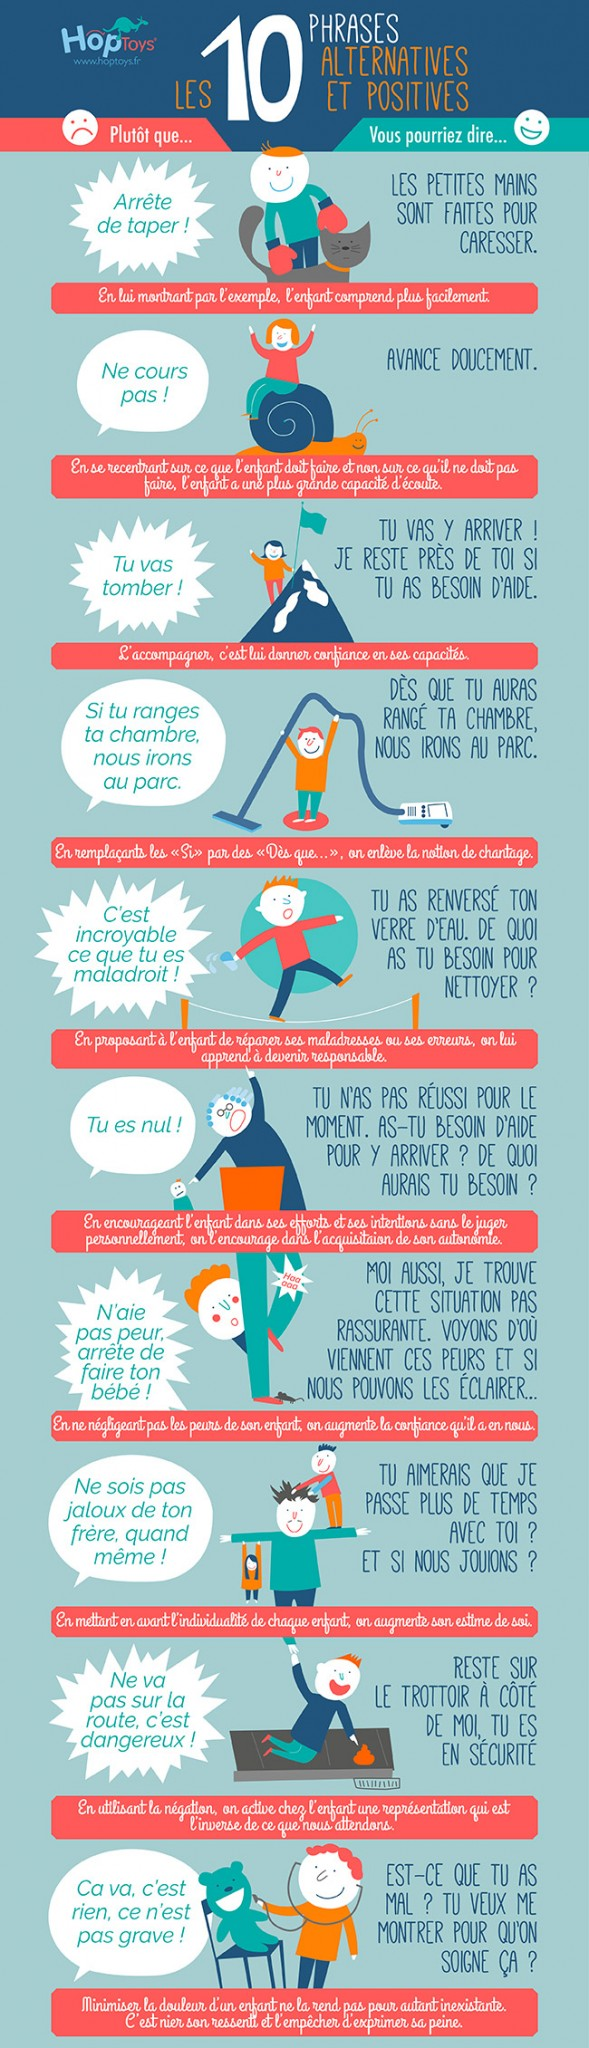 infographie-phrases_blog-1-2